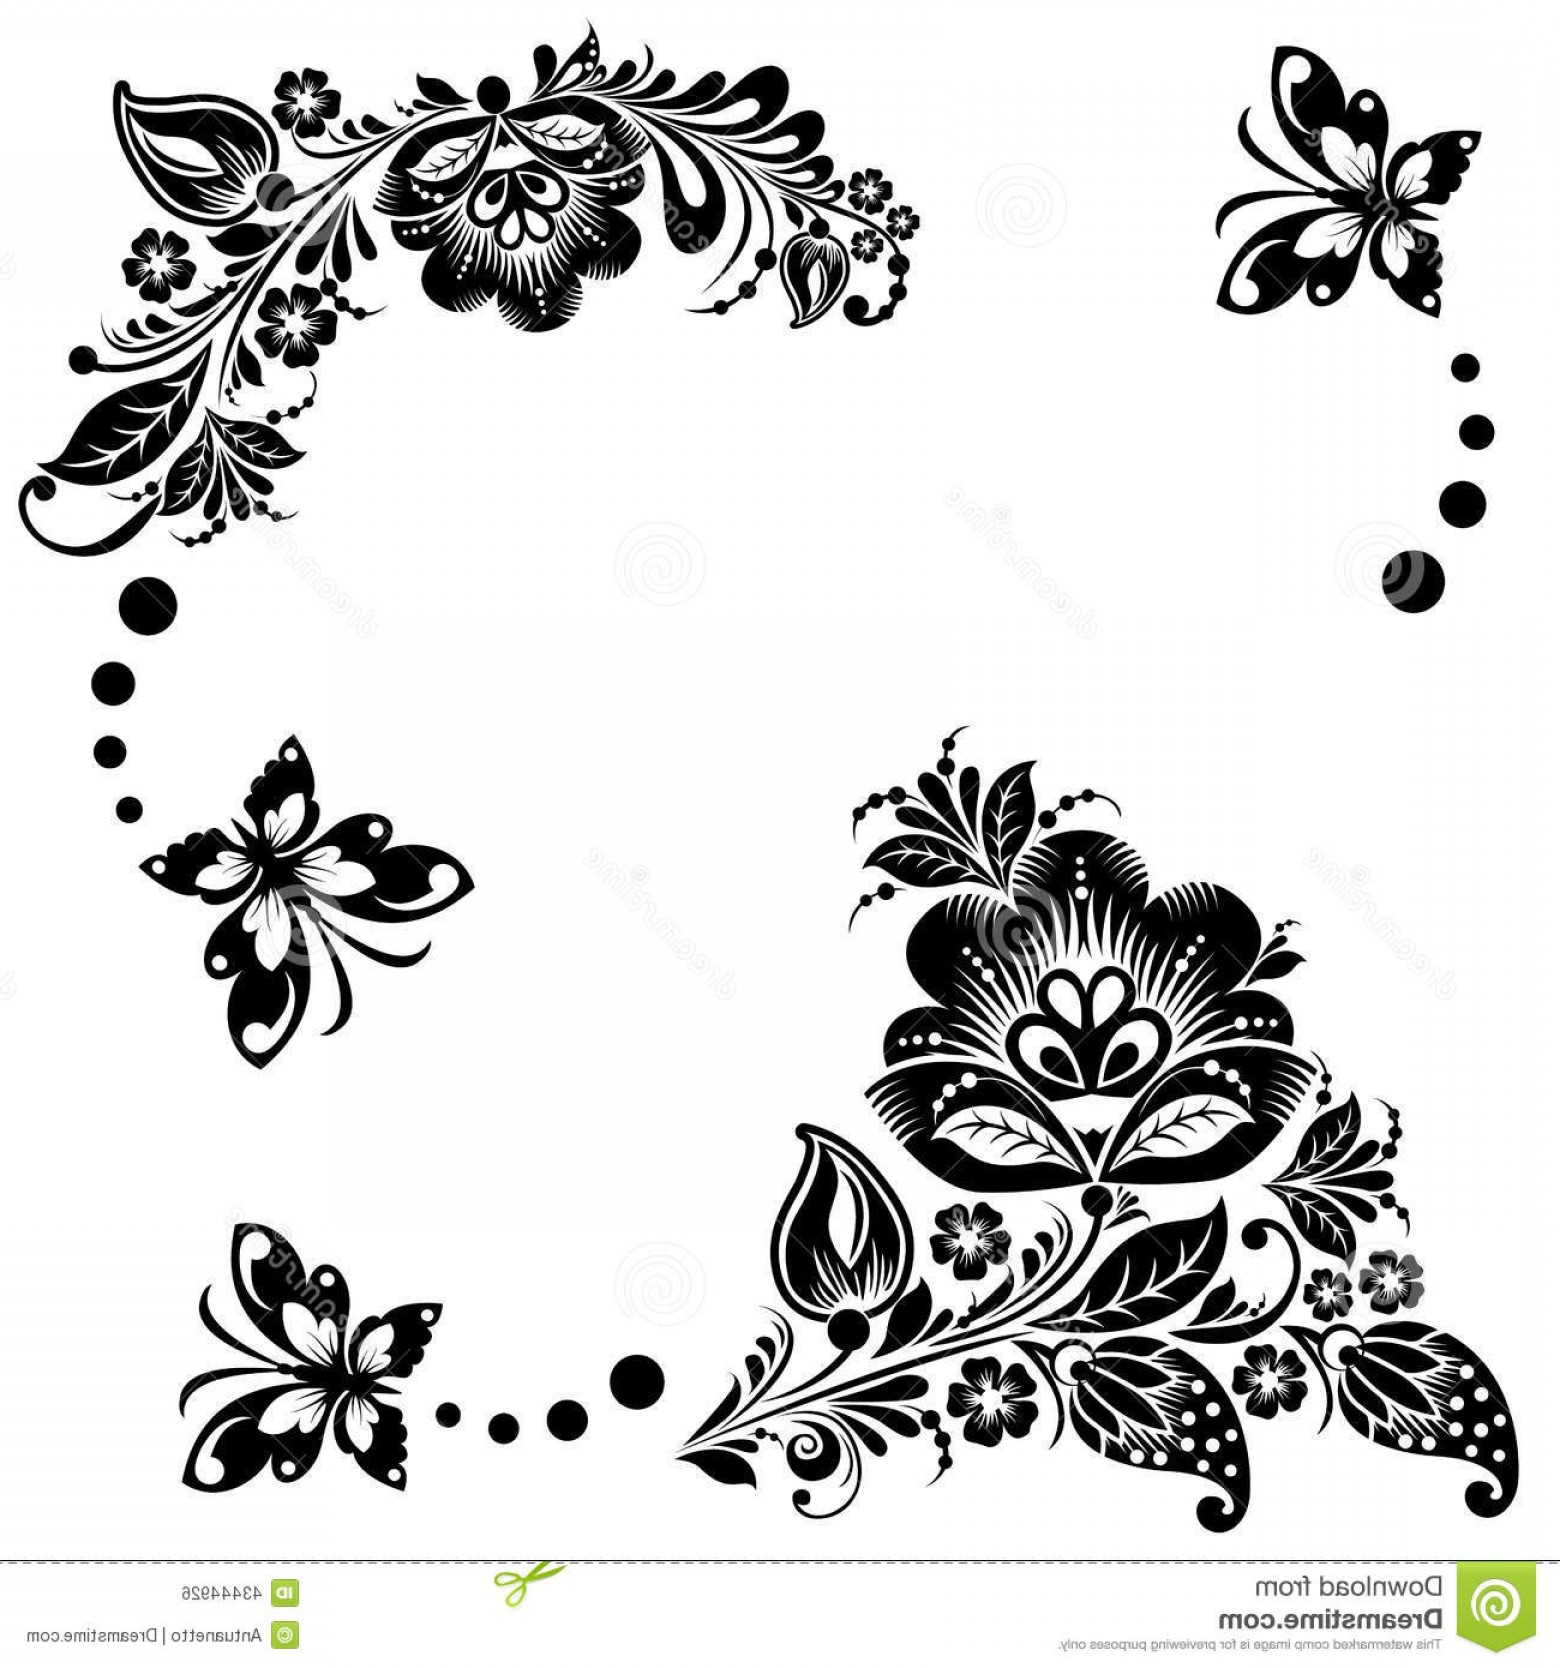 Butter Fly And Flower Vector Black And White: Stock Illustration Abstract Floral Background Butterflies Vector Elements Flower Black White Image